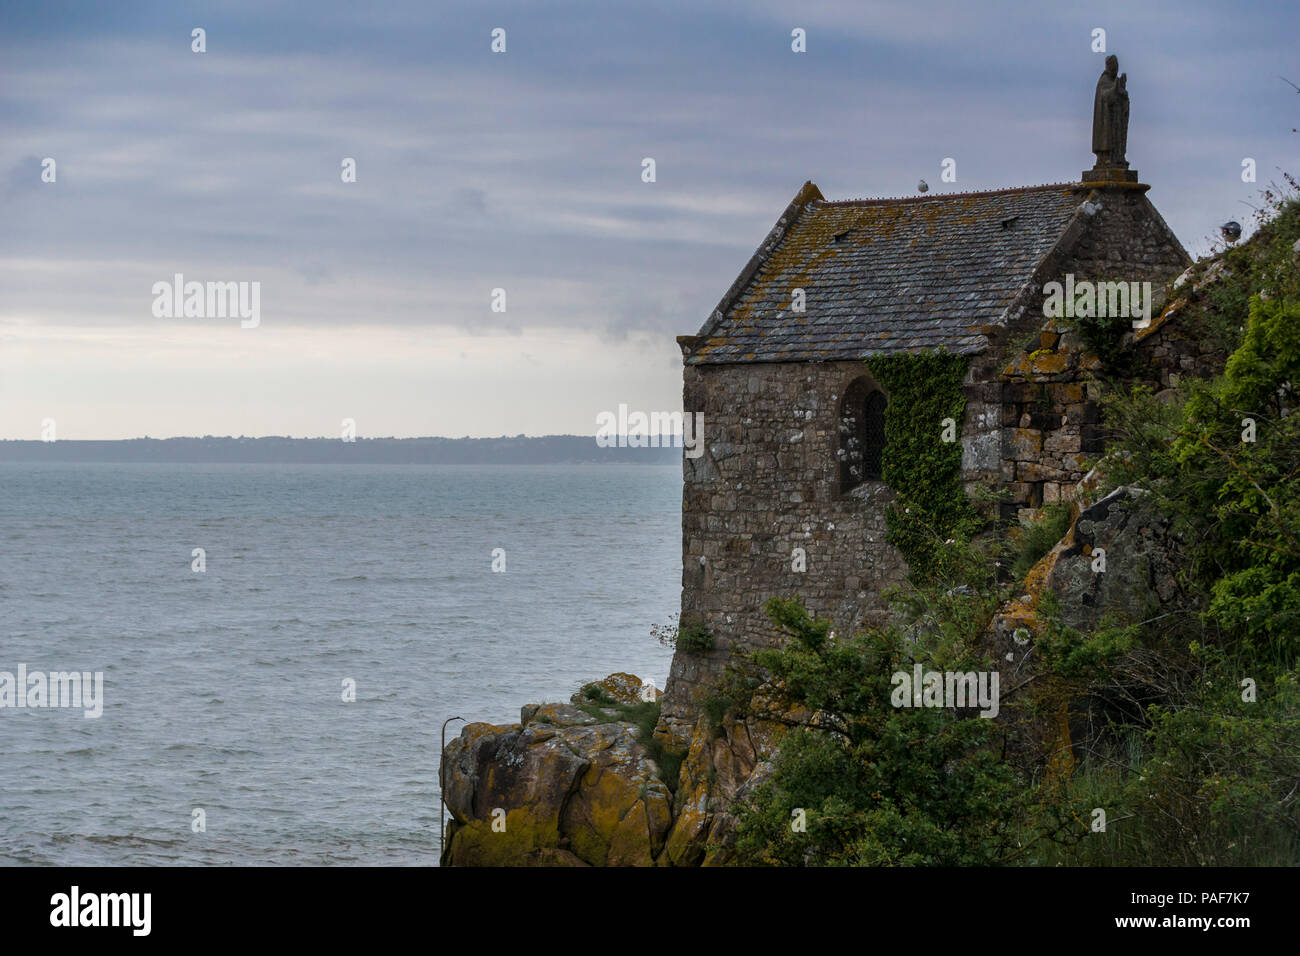 A building on the southern tip of the famous island of Mont St. Michel, Normandy, France. Stock Photo